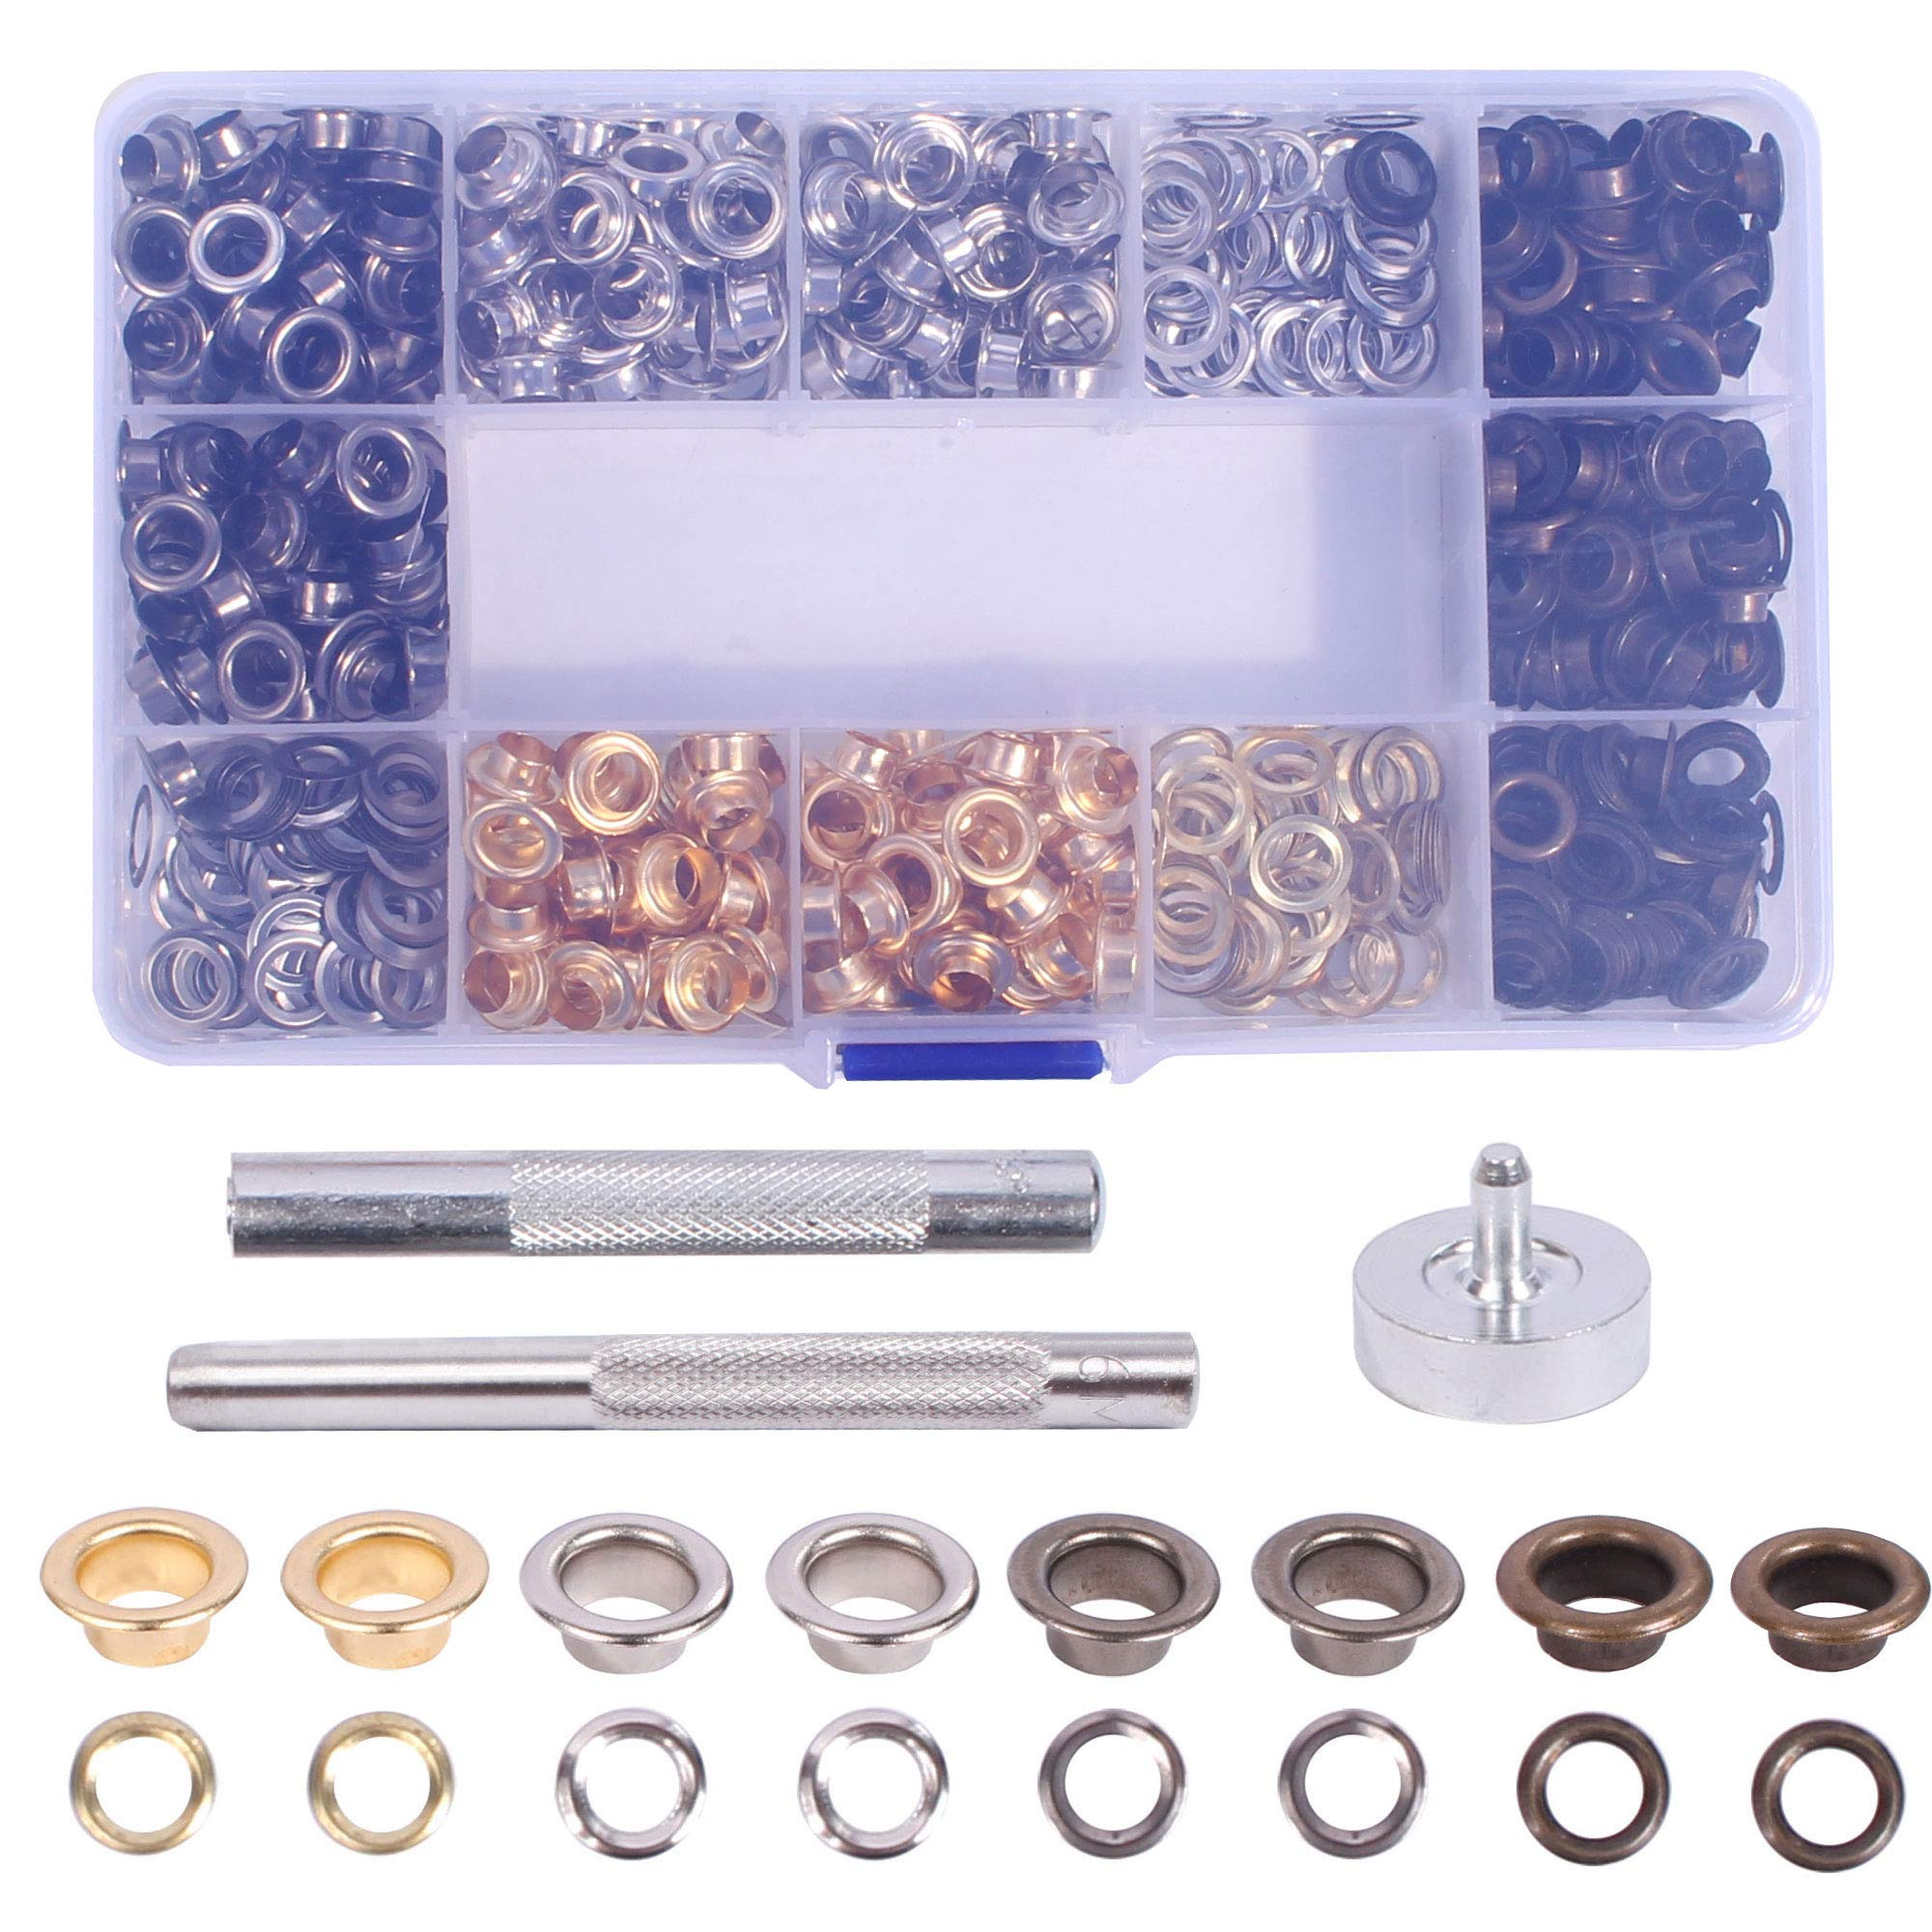 400 Sets Grommet Tool Kit 1/4 inch, Grommet Eyelet Setting Tool with Storage Box by AllGoodWare